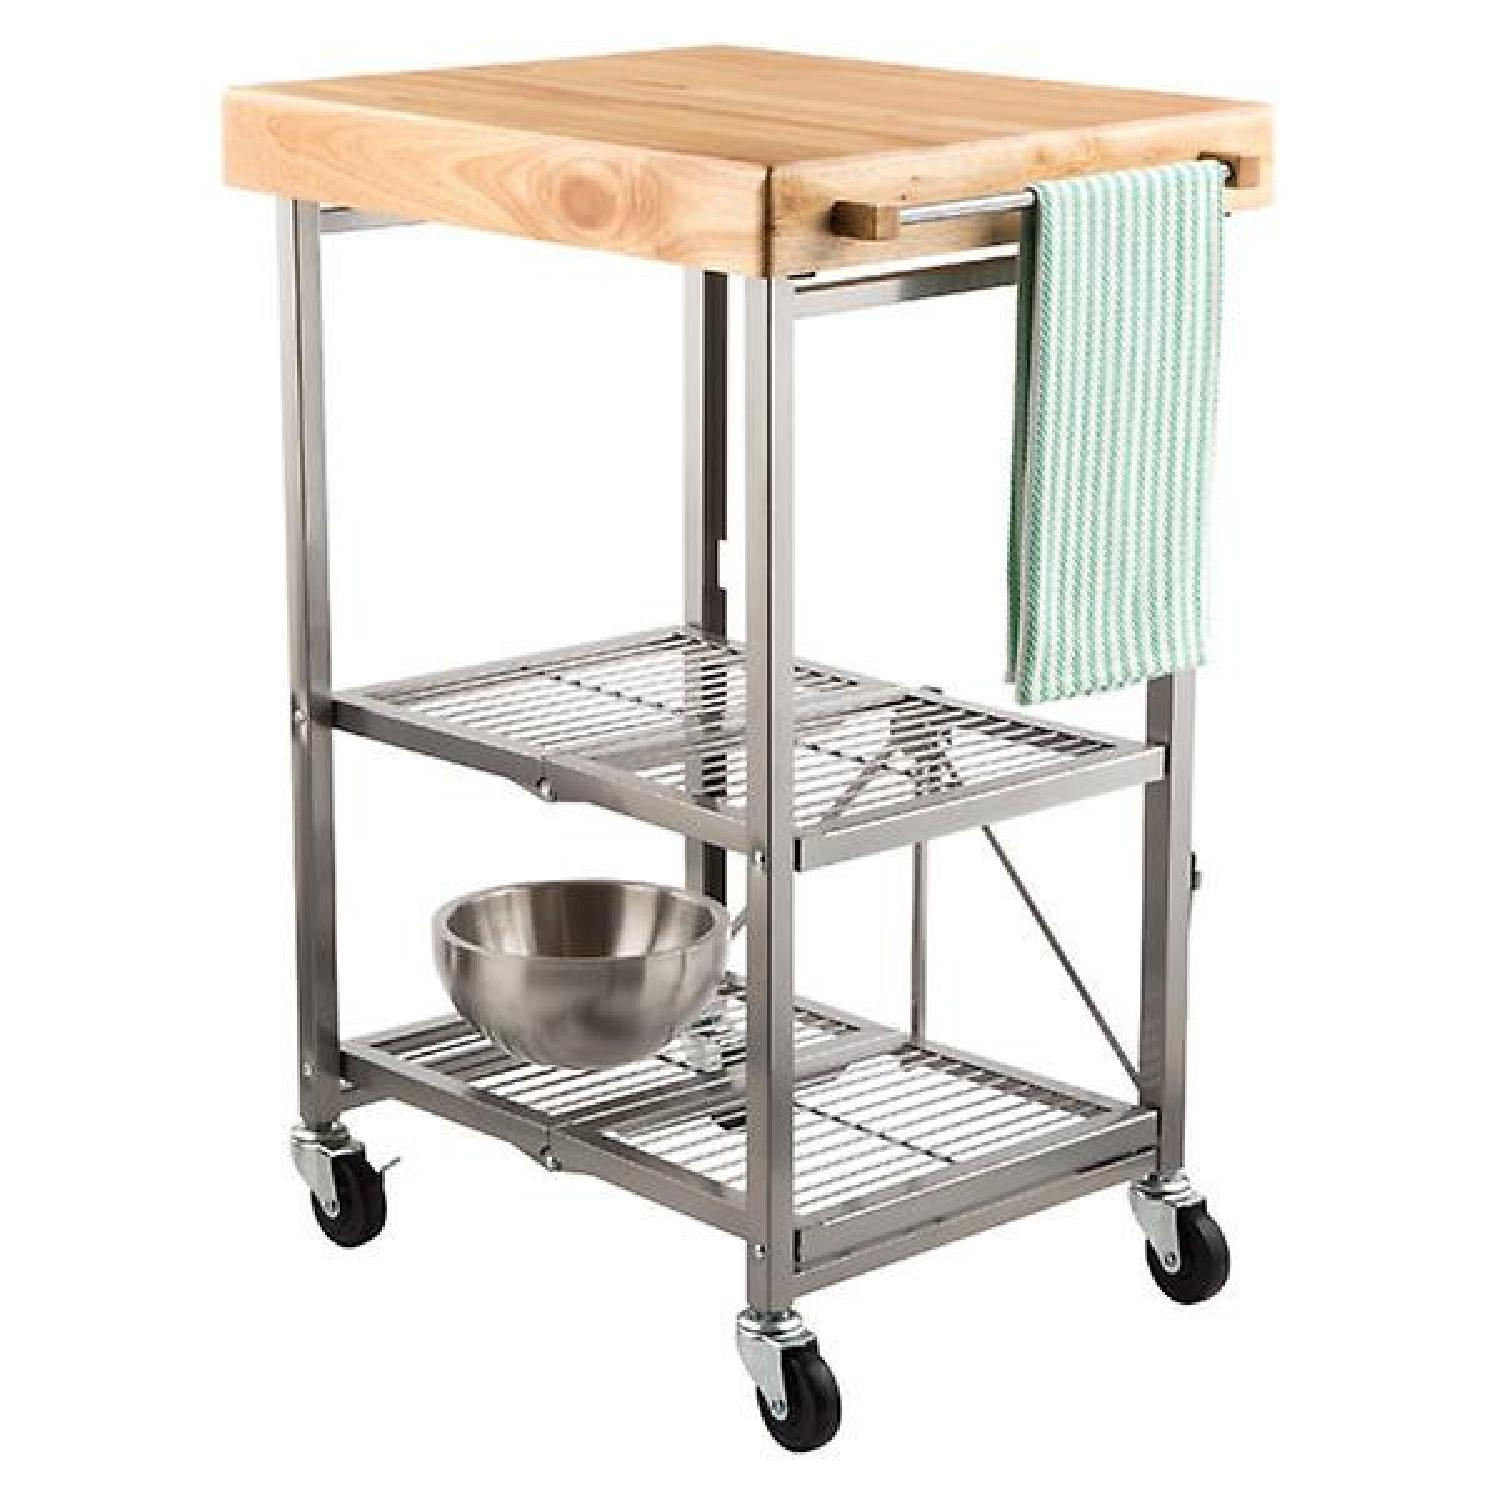 Kitchen Island Cart with Wheels – Origami Rack | 1500x1500